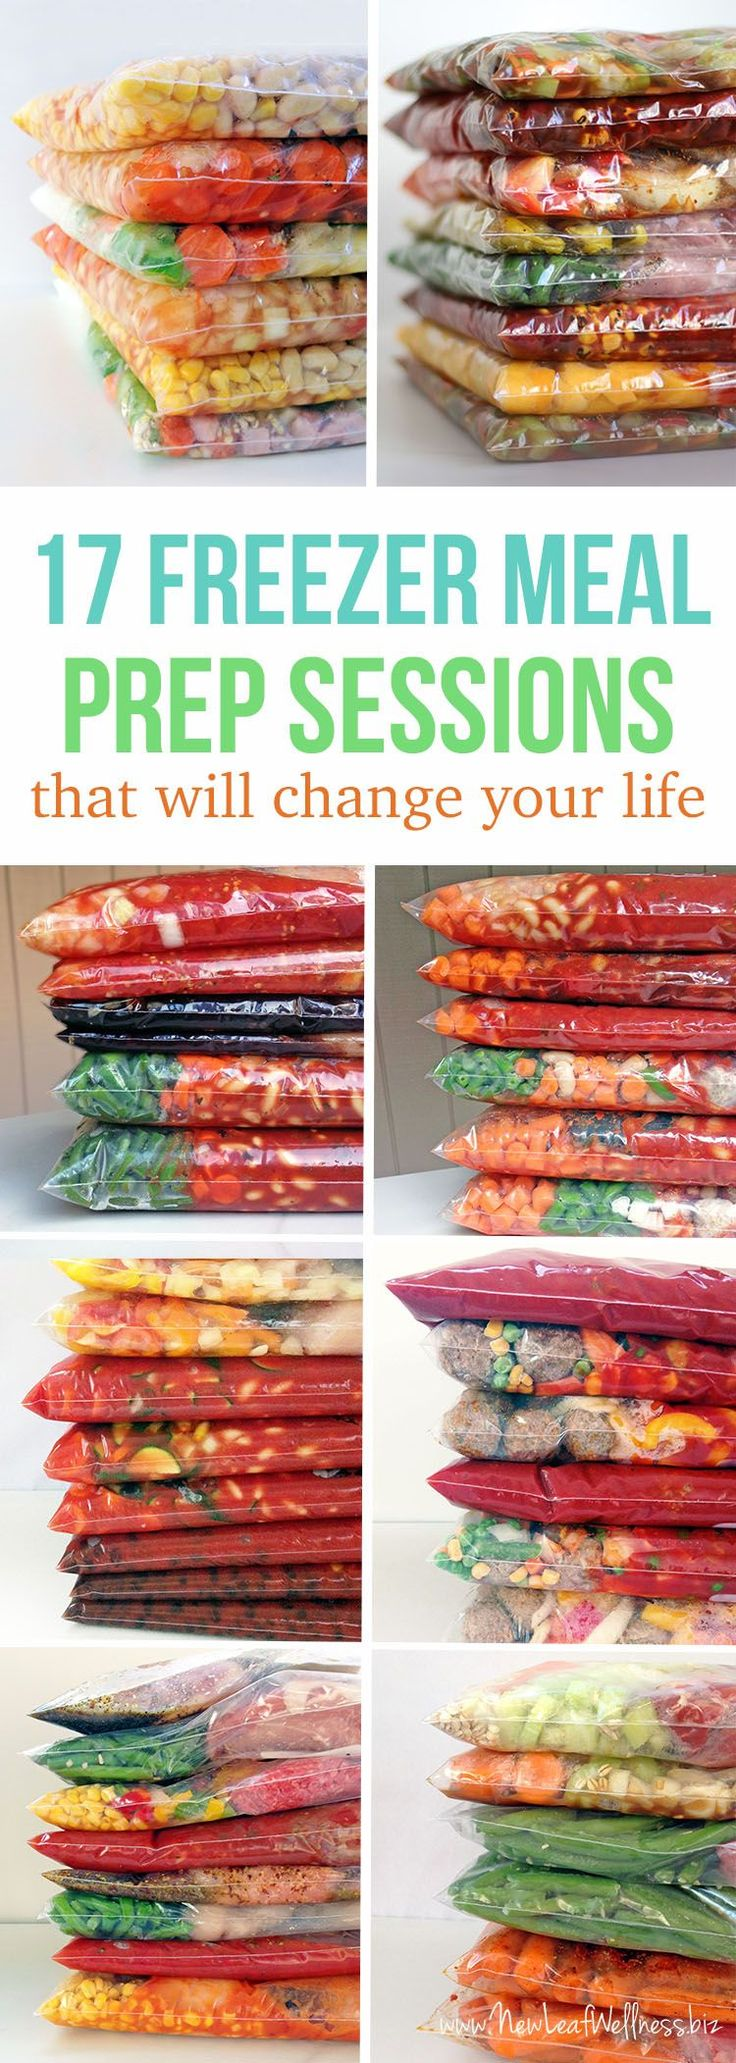 17 Freezer Meal Prep Sessions That Will Change Your Life! (Grocery Lists and Printable Recipes Included). Simply combine the ingredients in a gallon-sized bag and freeze!